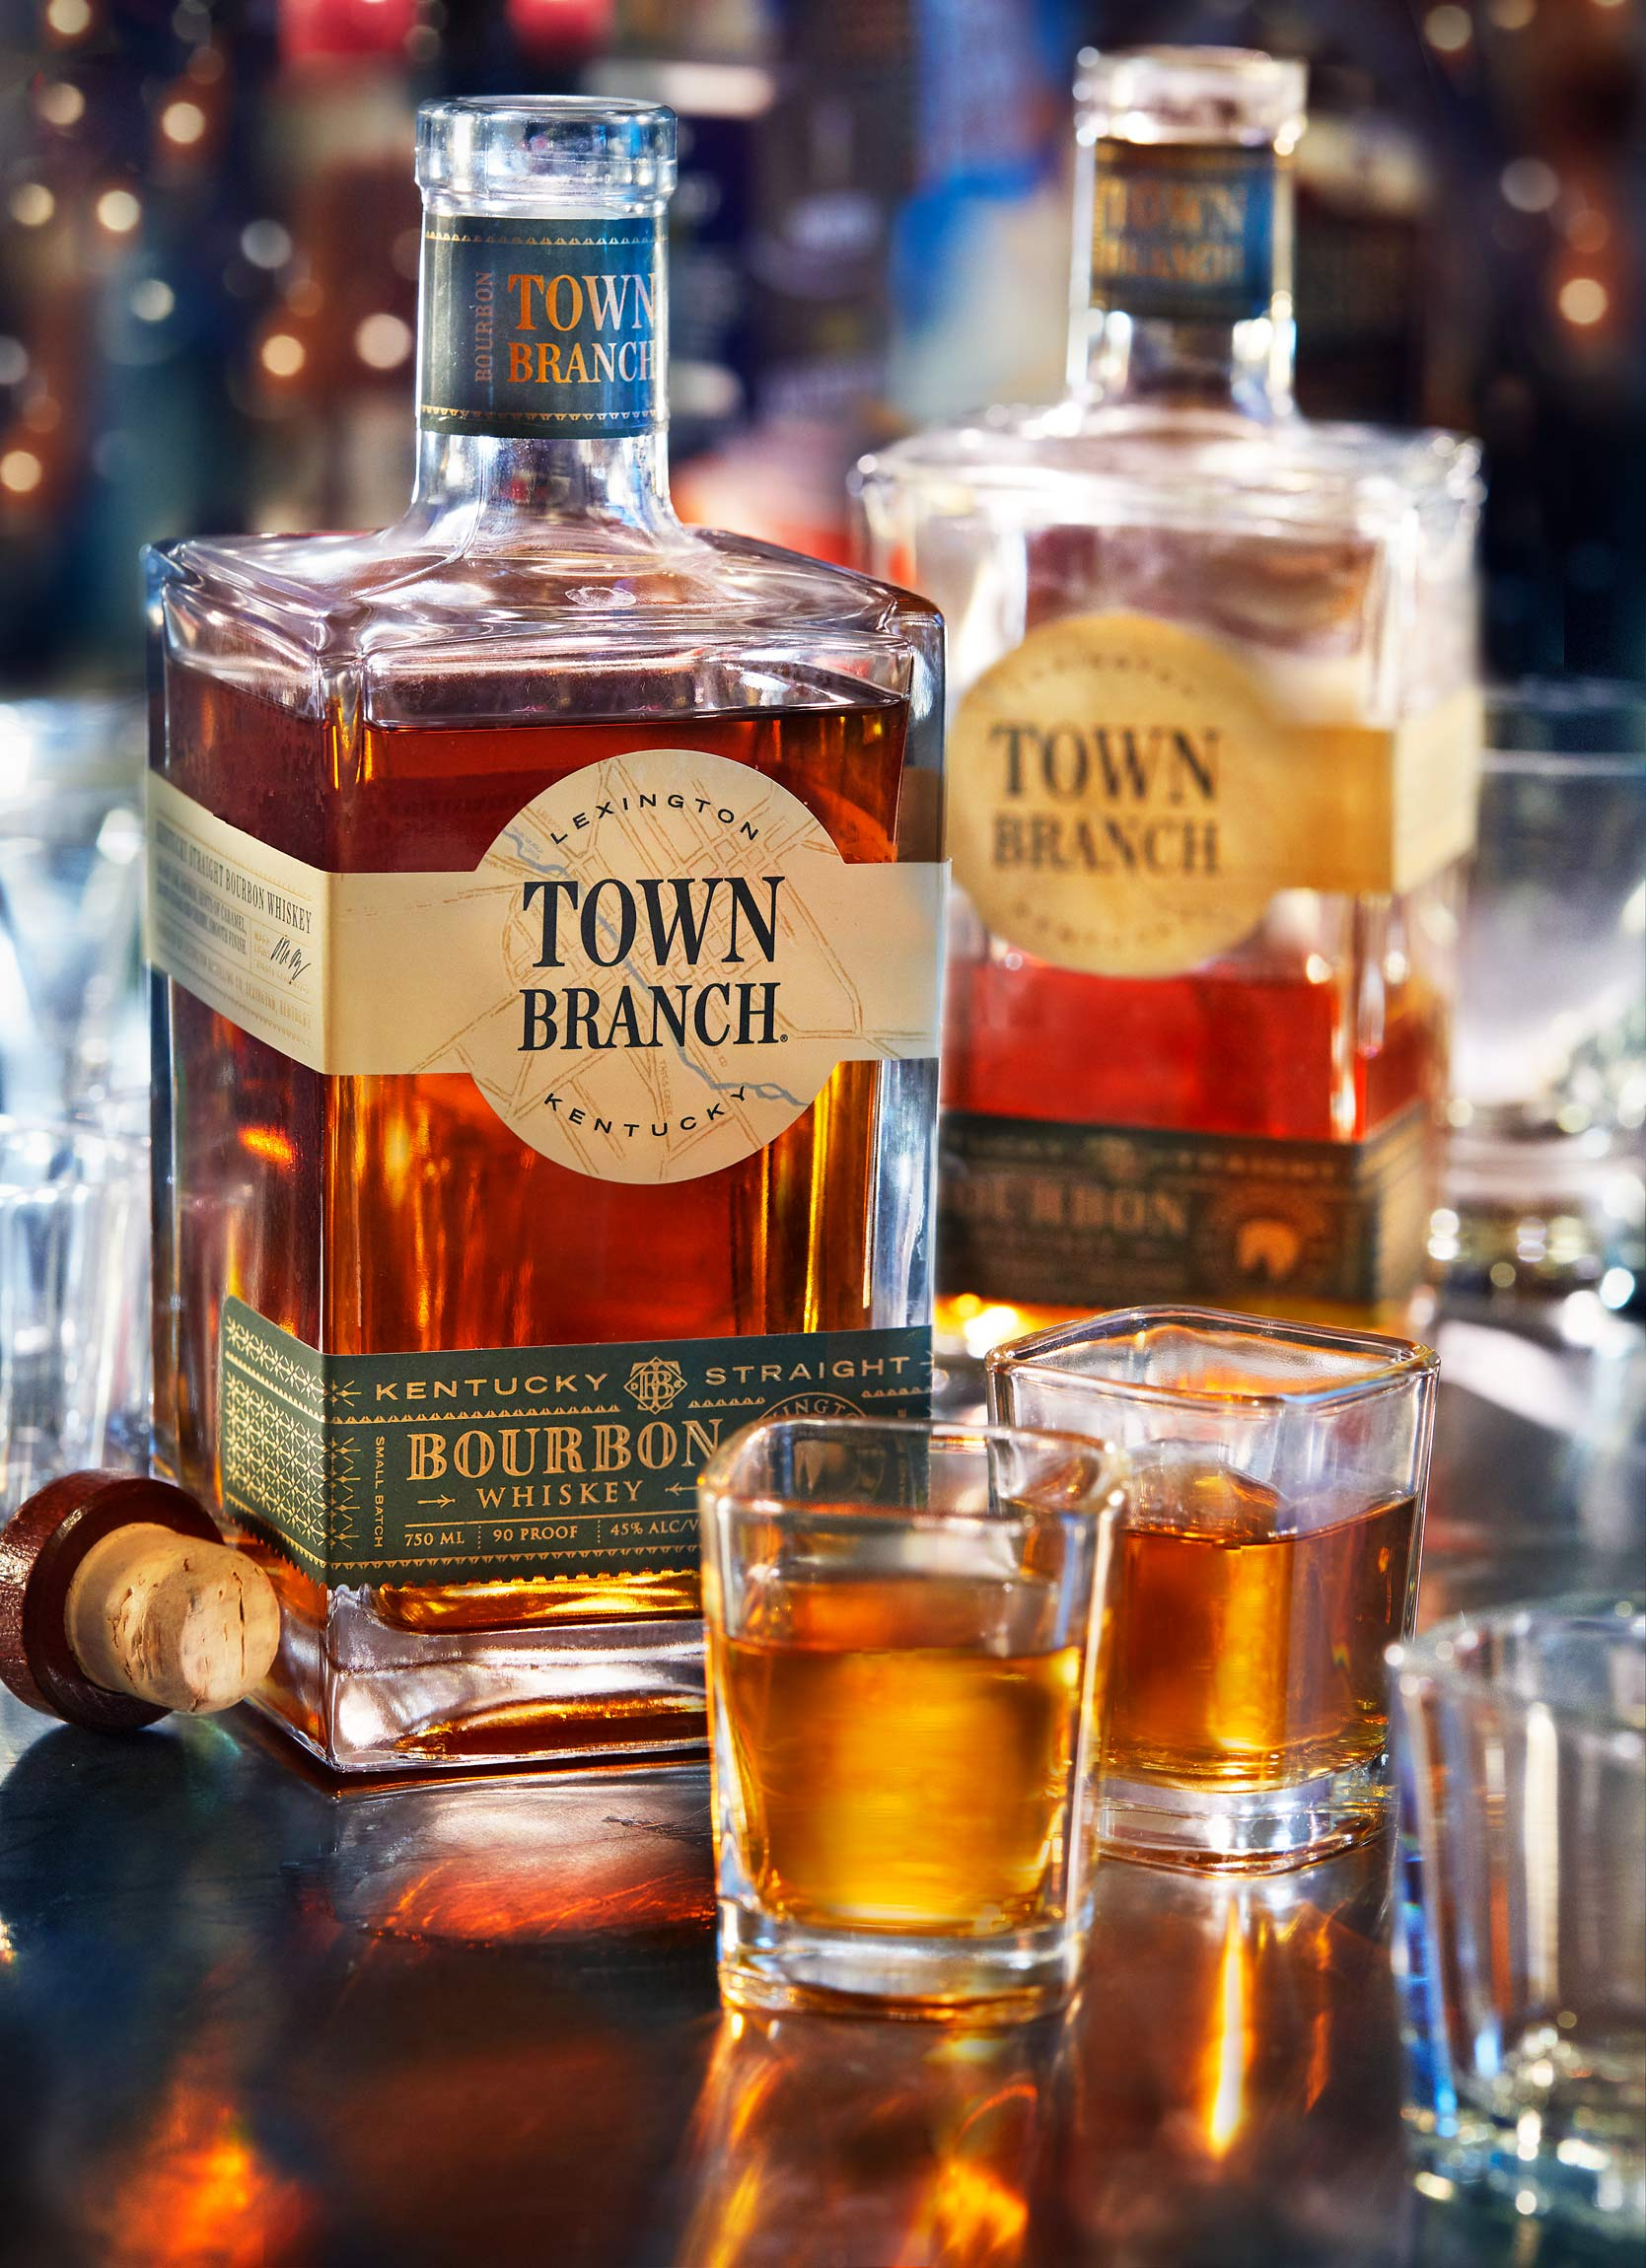 Town Branch Bourbon Whisky